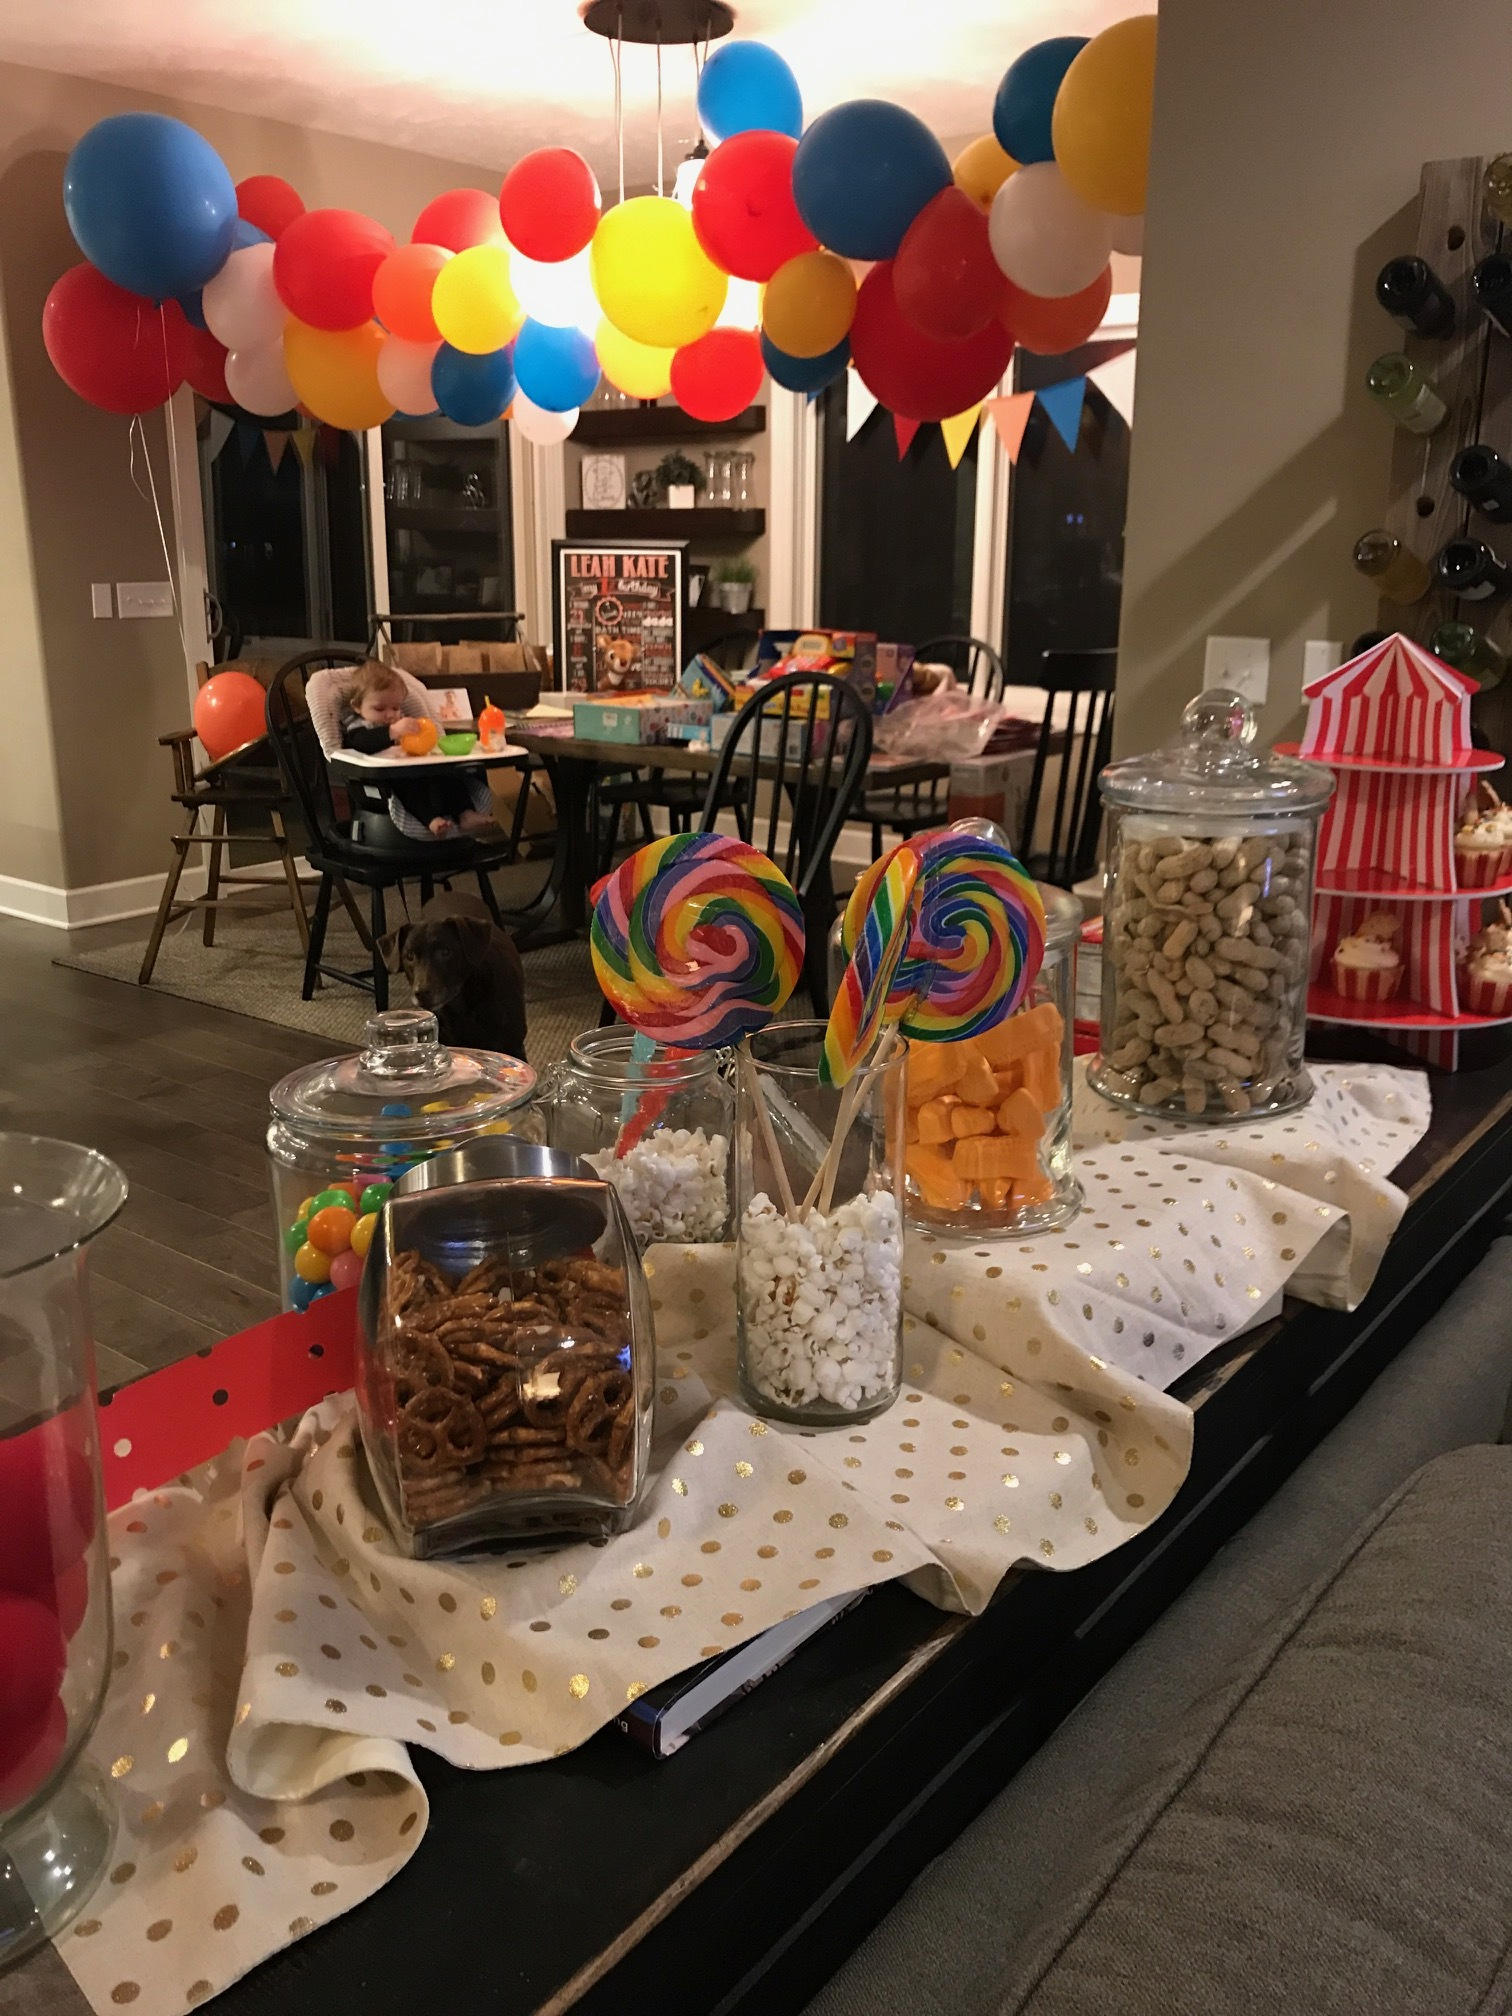 """Bad iphone pic of the balloon garland, plus cute baby eating dinner equals a """"good enough"""" photo for a blog."""